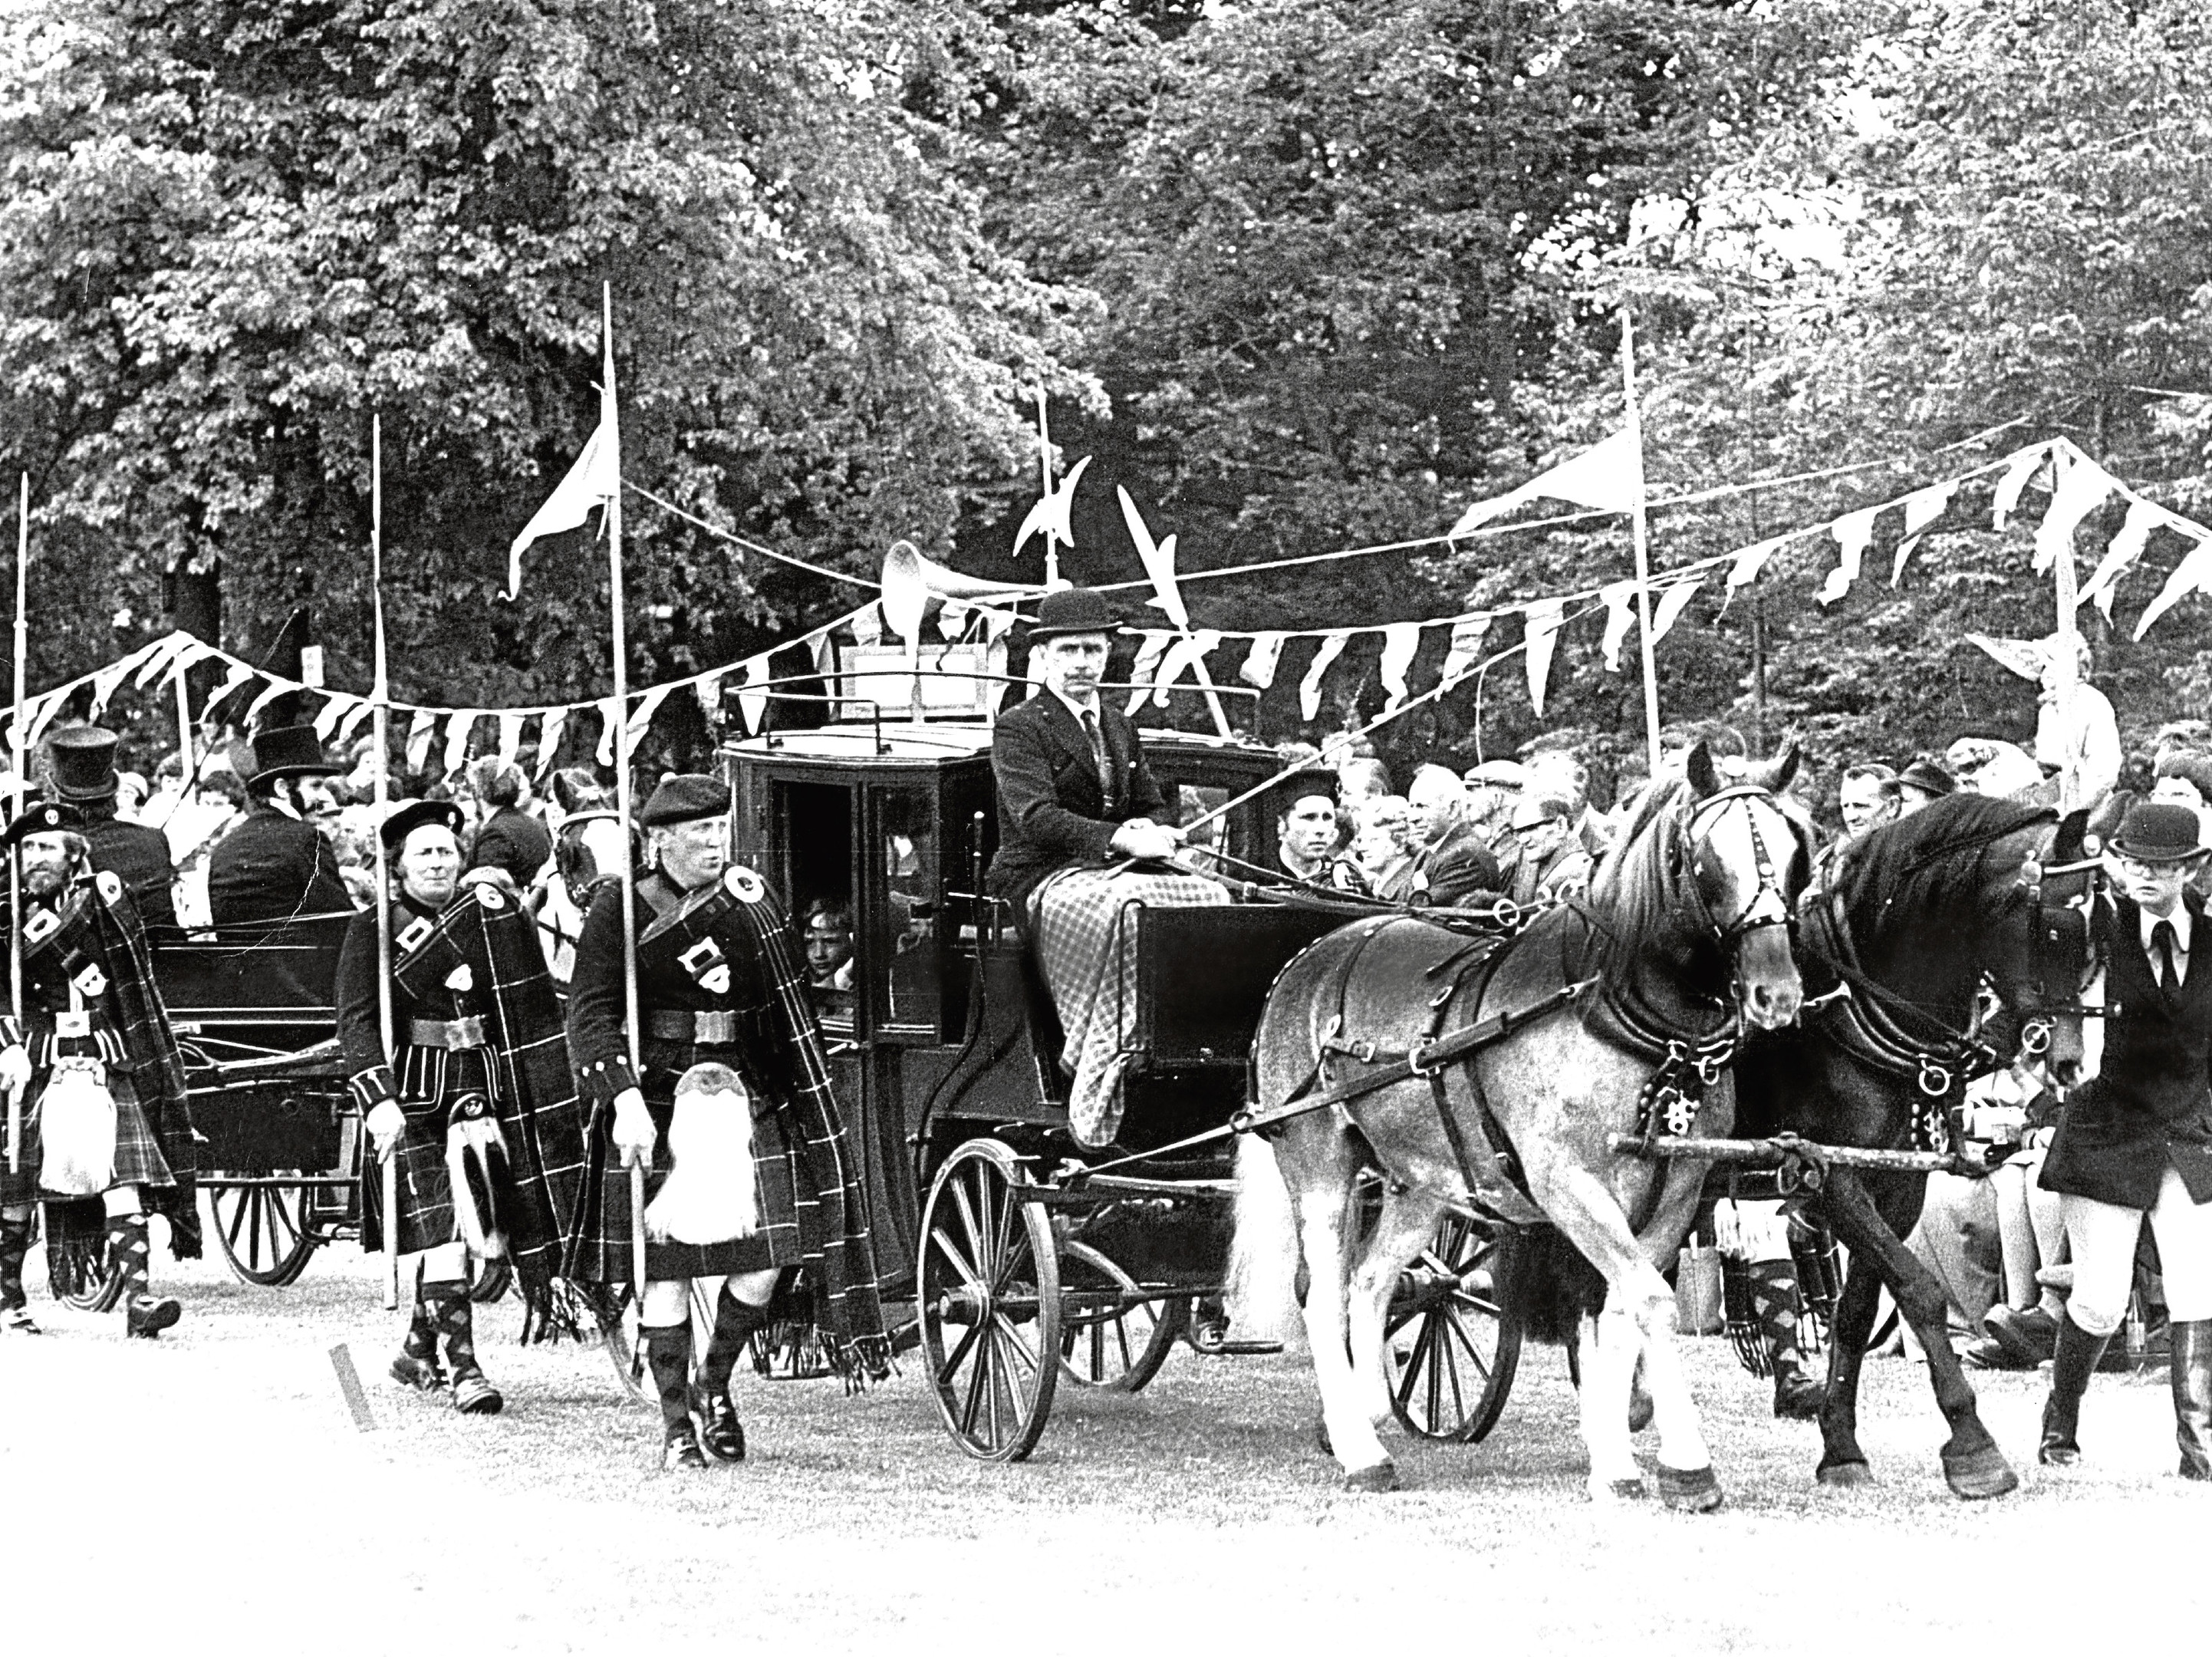 A Victorian procession was held with Lonach Highlanders flanking coachman John Taylor, of Dyce, in 1977.